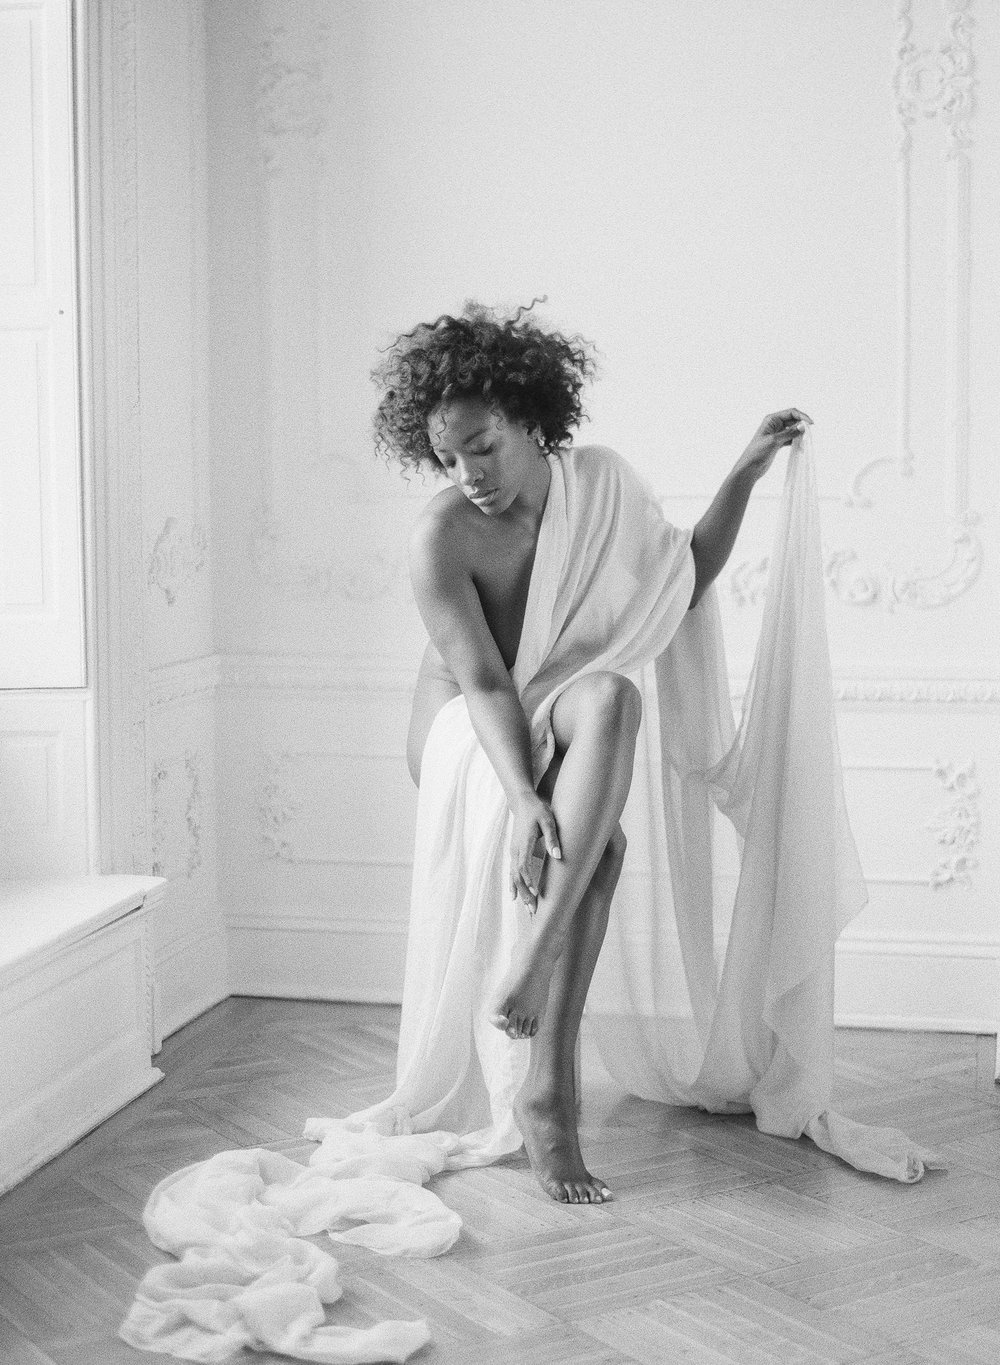 Minimal boudoir photoshoot at the Elephant Restaurant Baltimore with Michael and Carina Photography and fine art luxury wedding planner and stylist East Made Event Company-0021.jpg